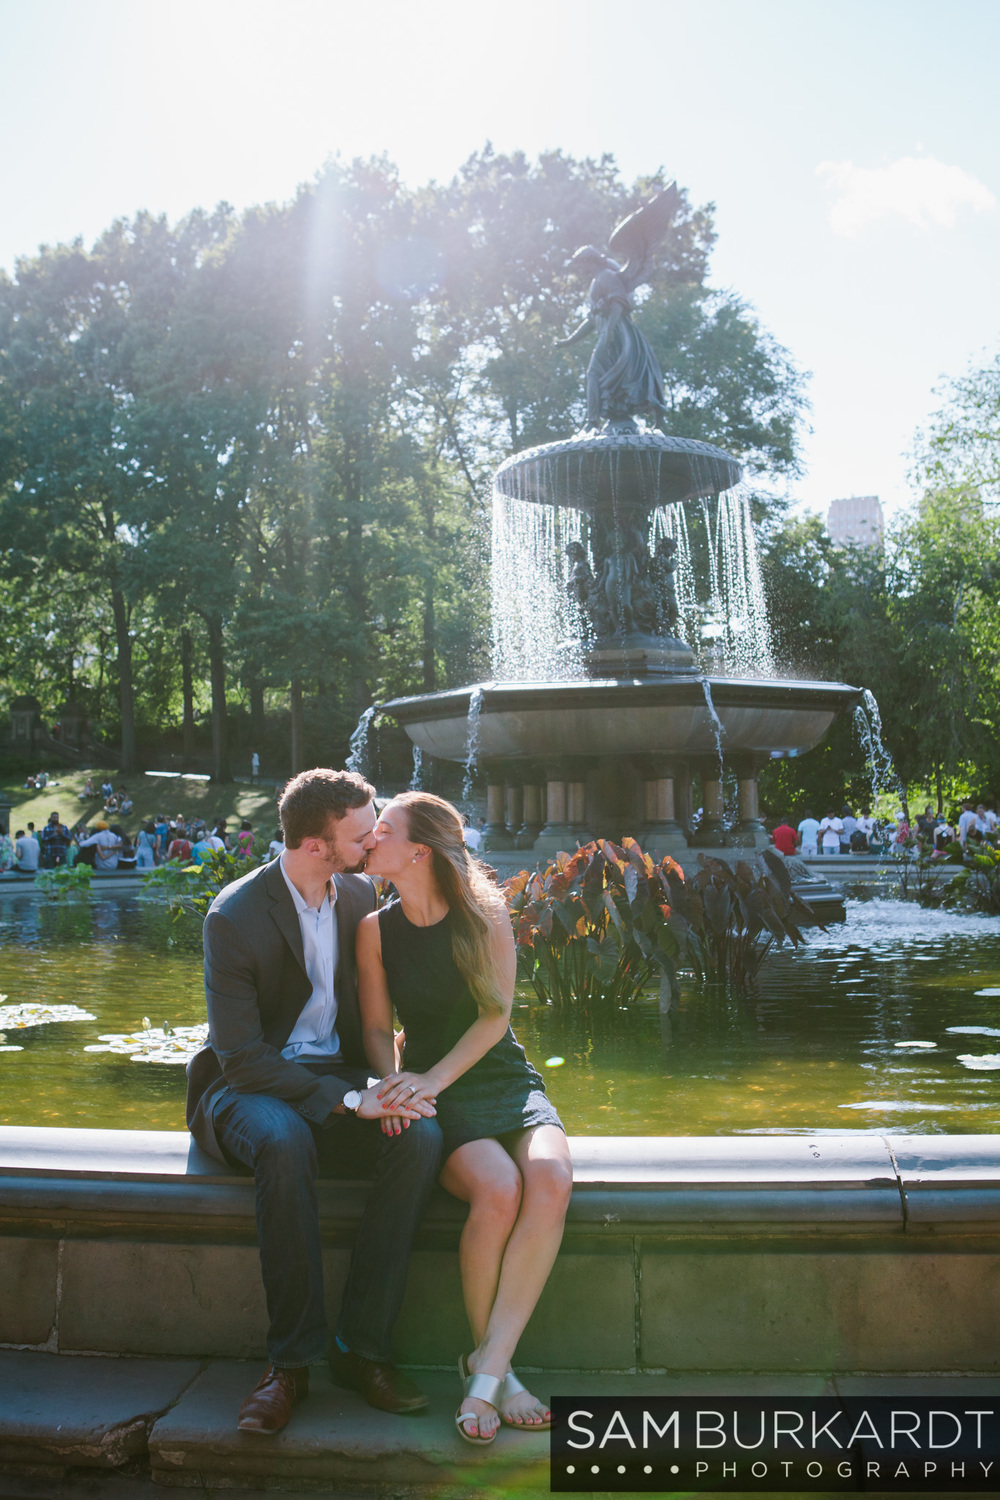 sburkardt_new_york_proposal_engagement_central_park_020.jpg